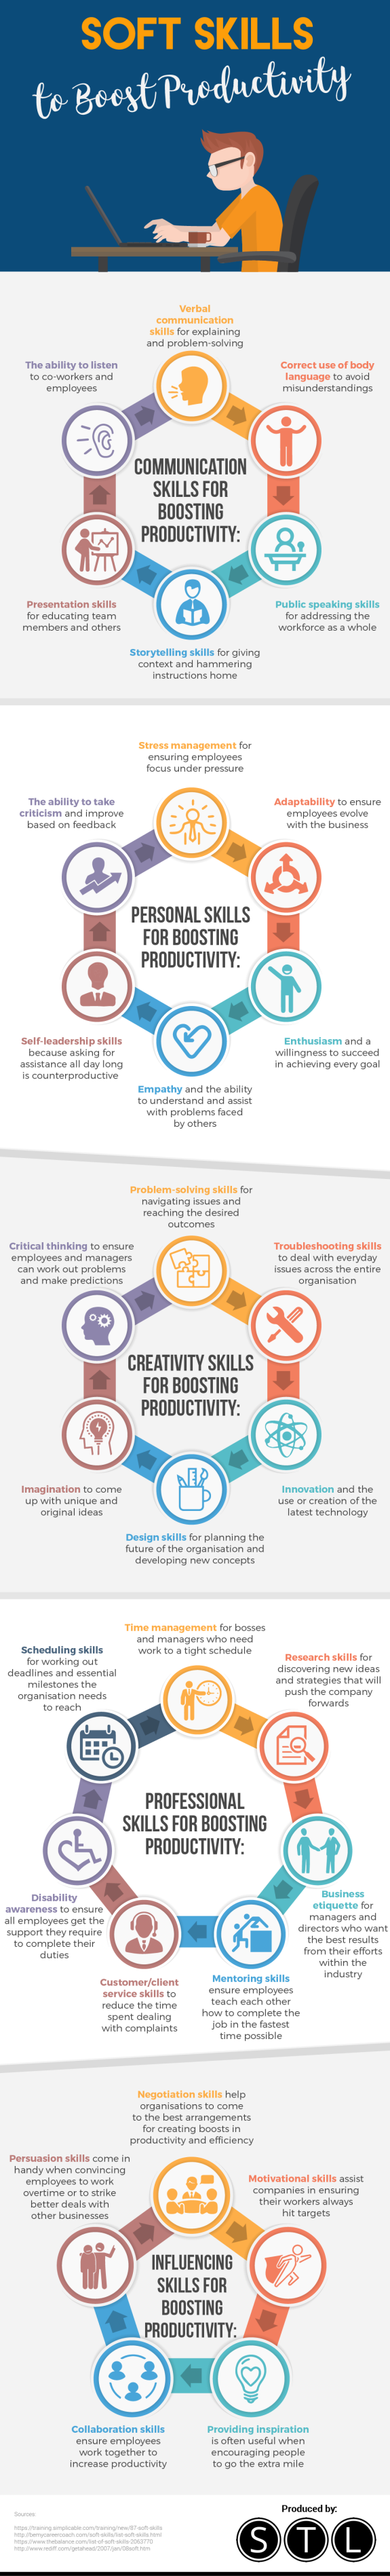 Soft Skills to Boost Productivity